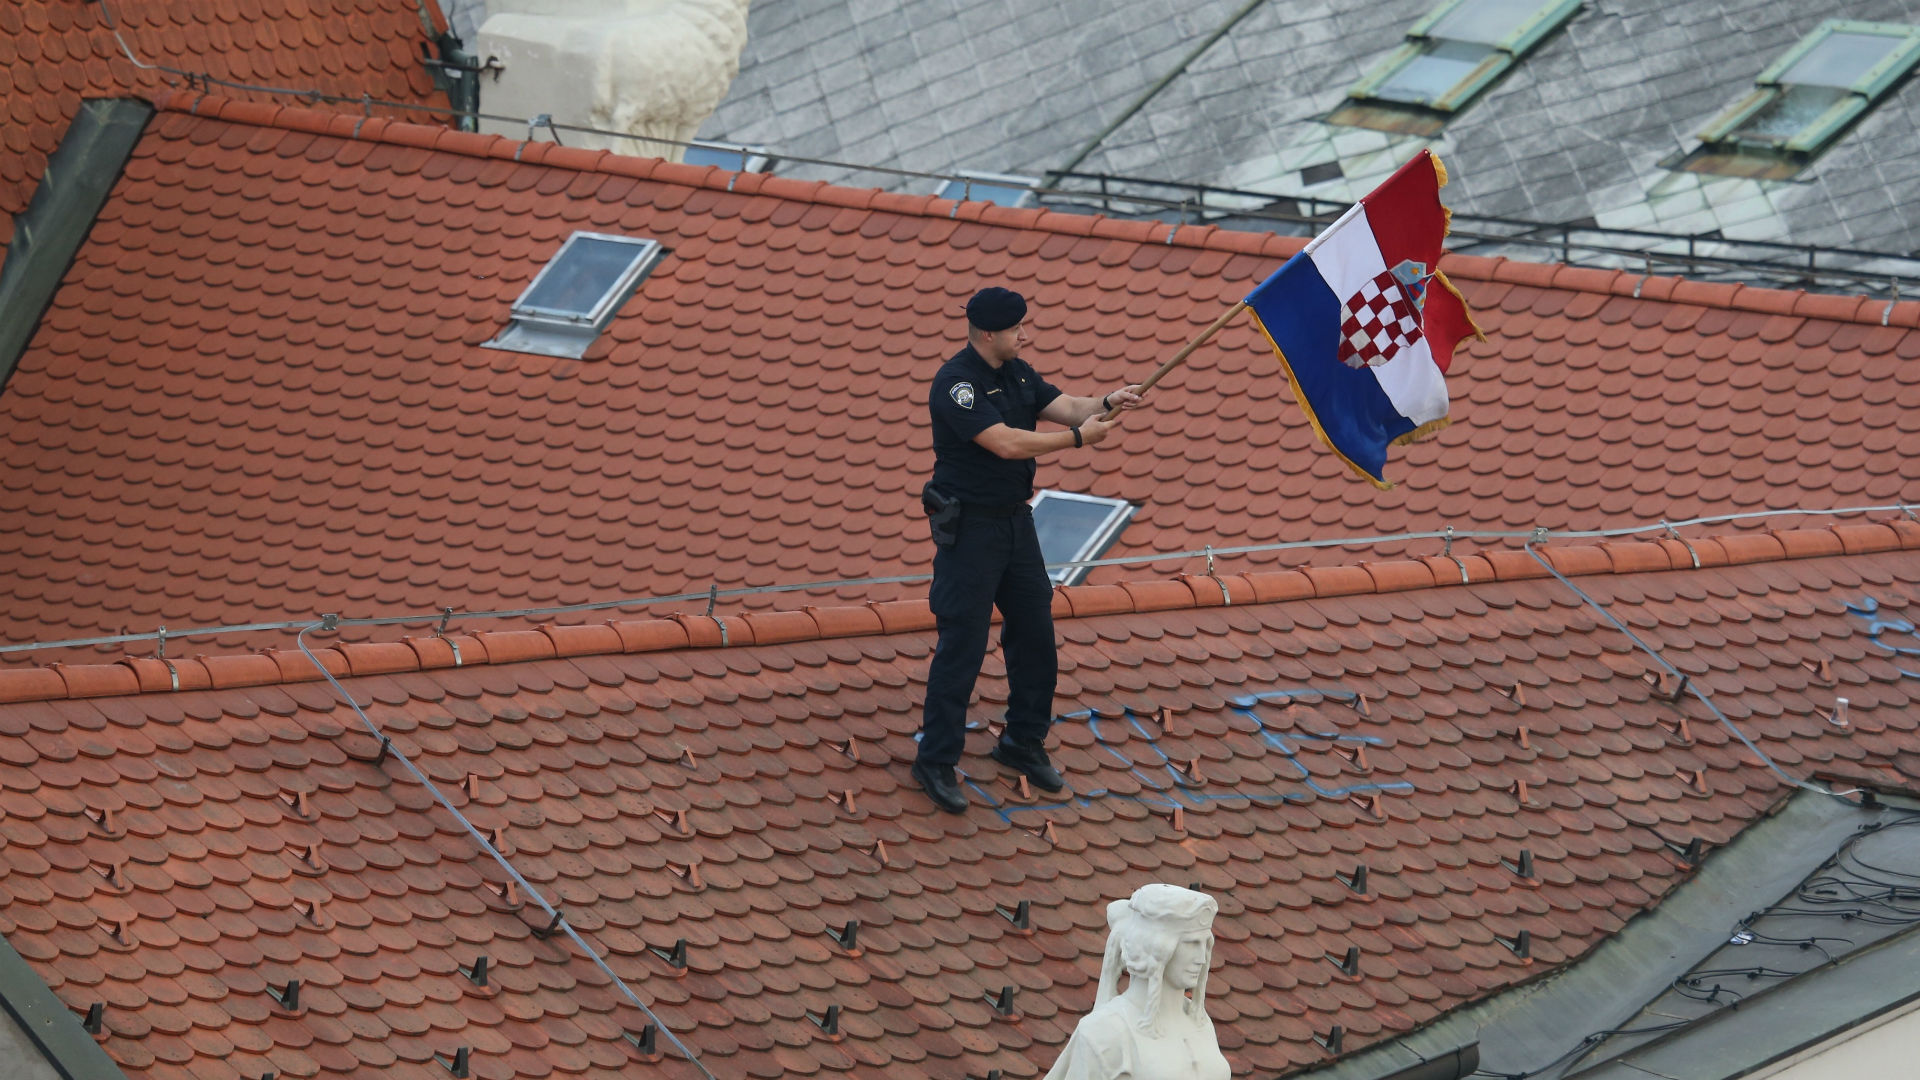 croatia - world cup - police - 16072018